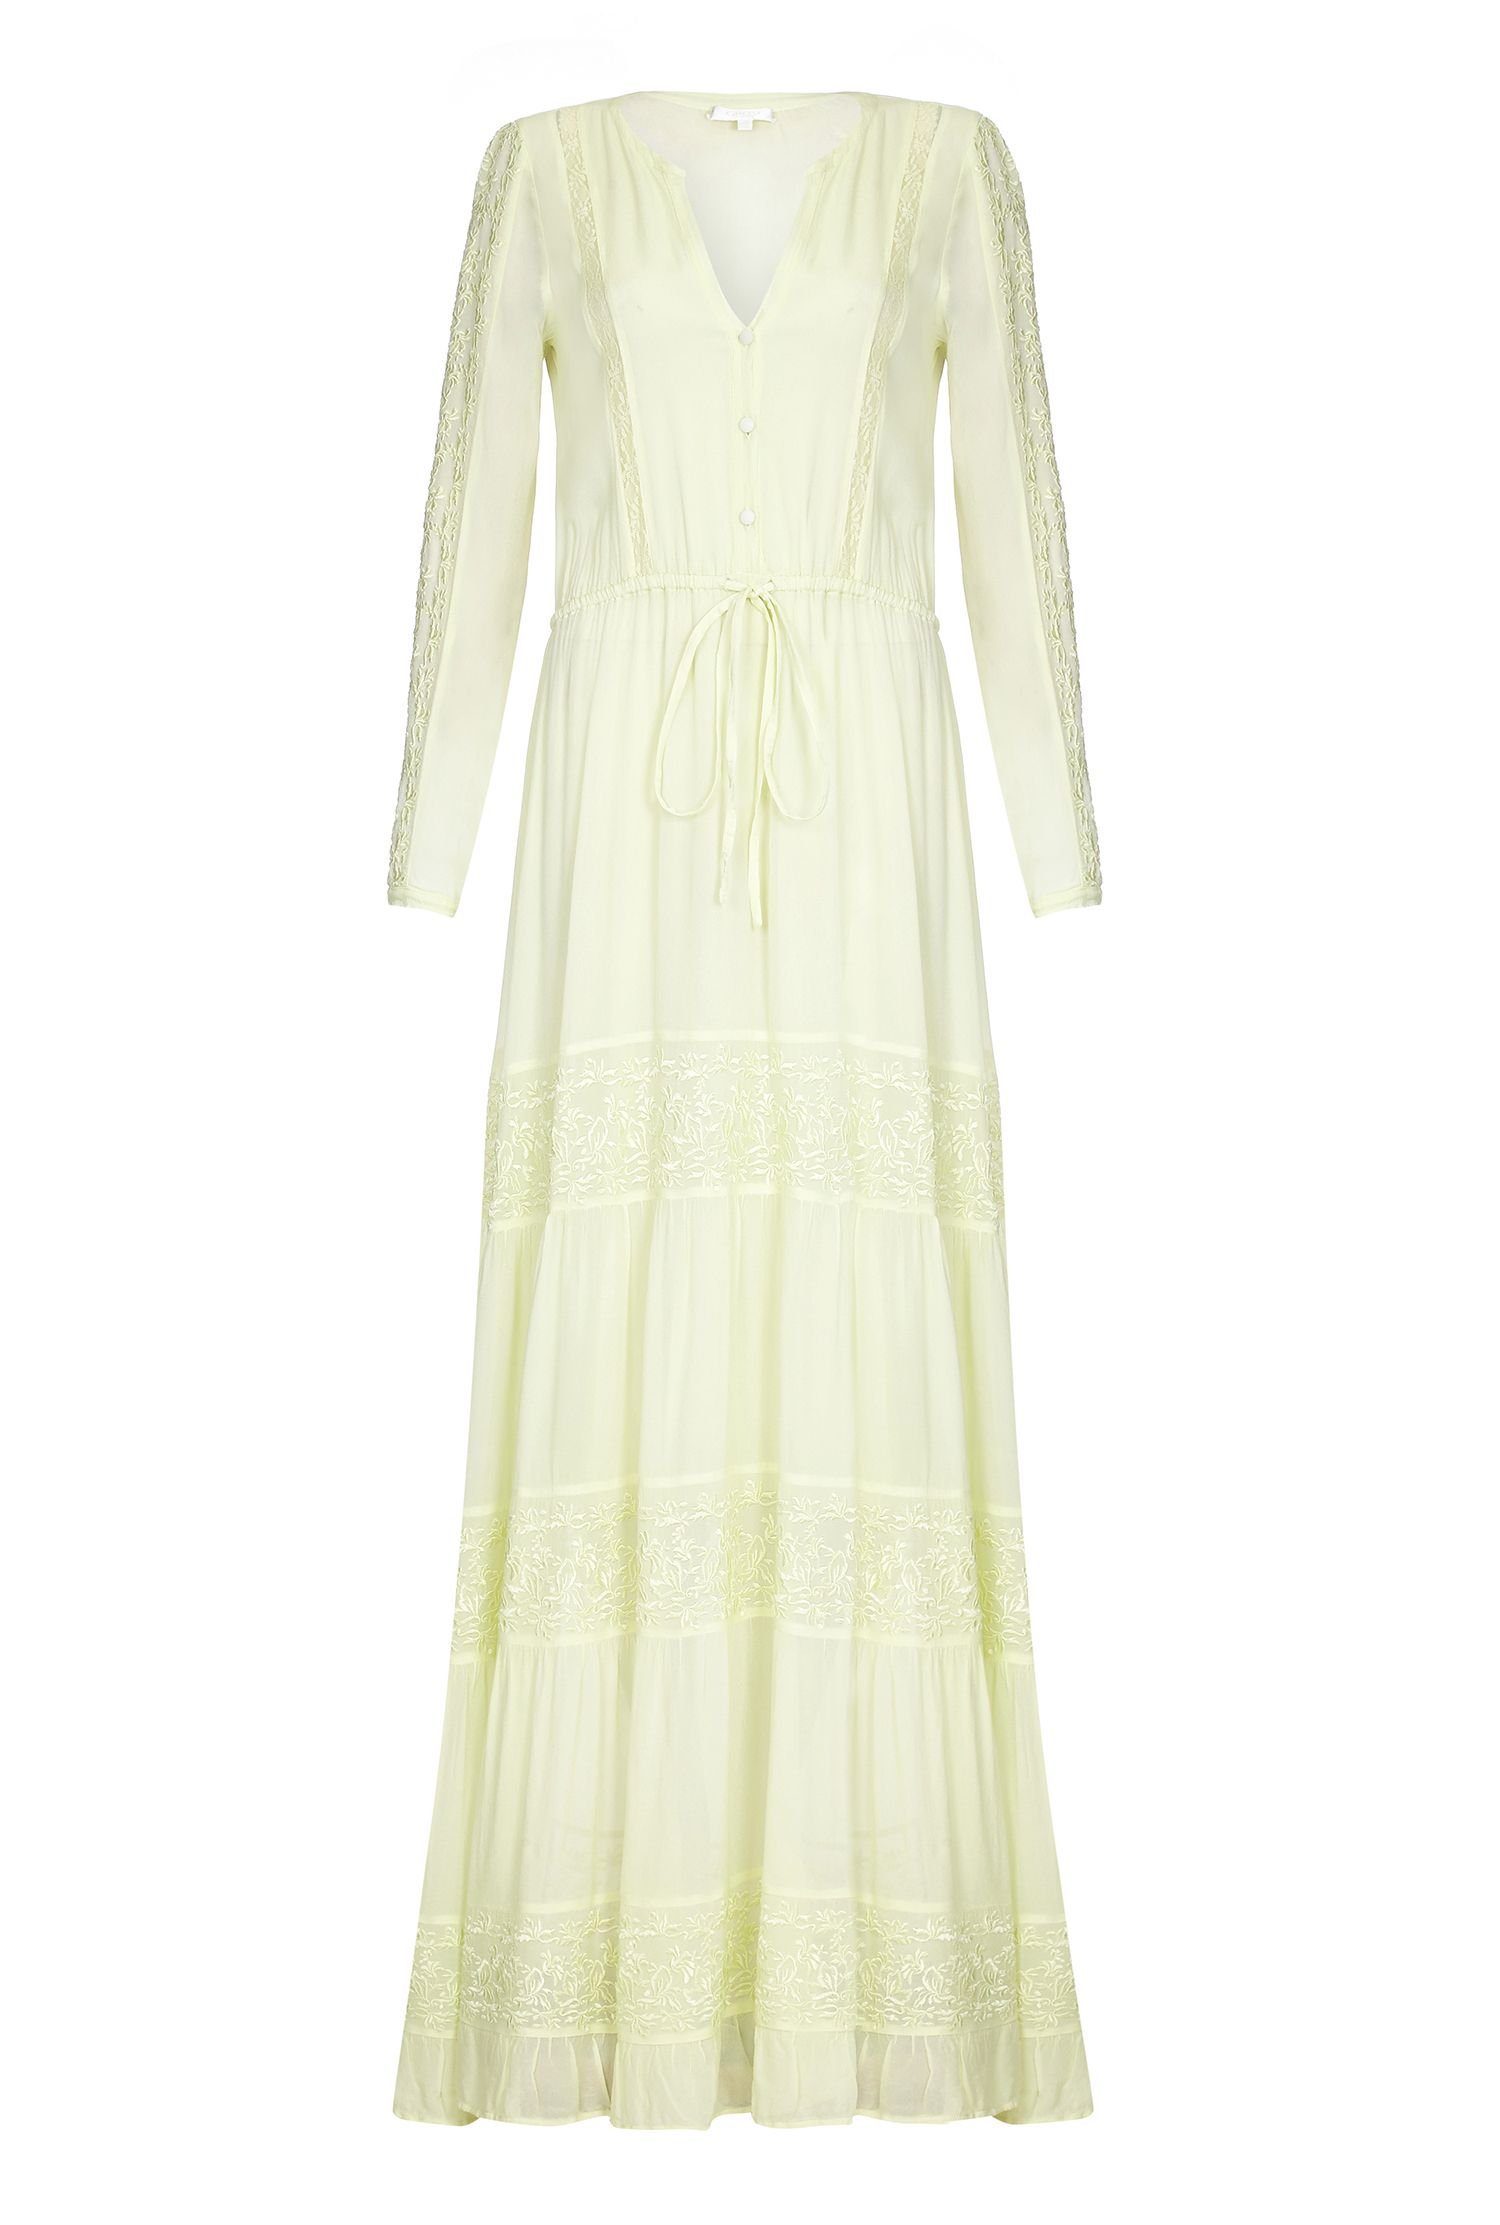 Formal Edwardian Gowns Ghost Eliza Dress Lemongrass £171.50 AT vintagedancer.com